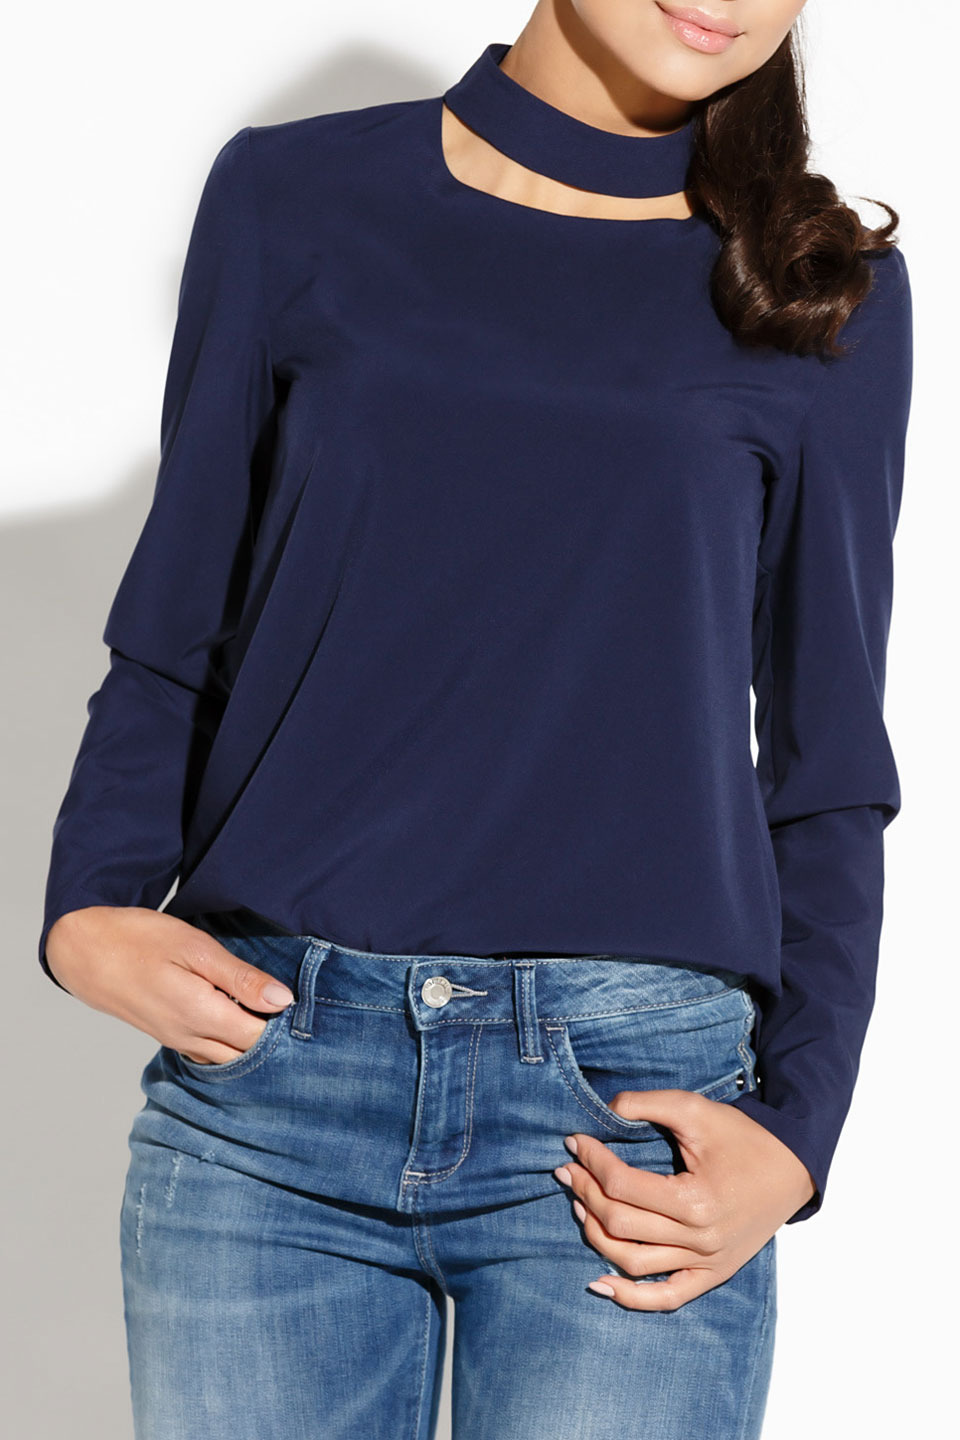 Sitivi Blouse in Navy